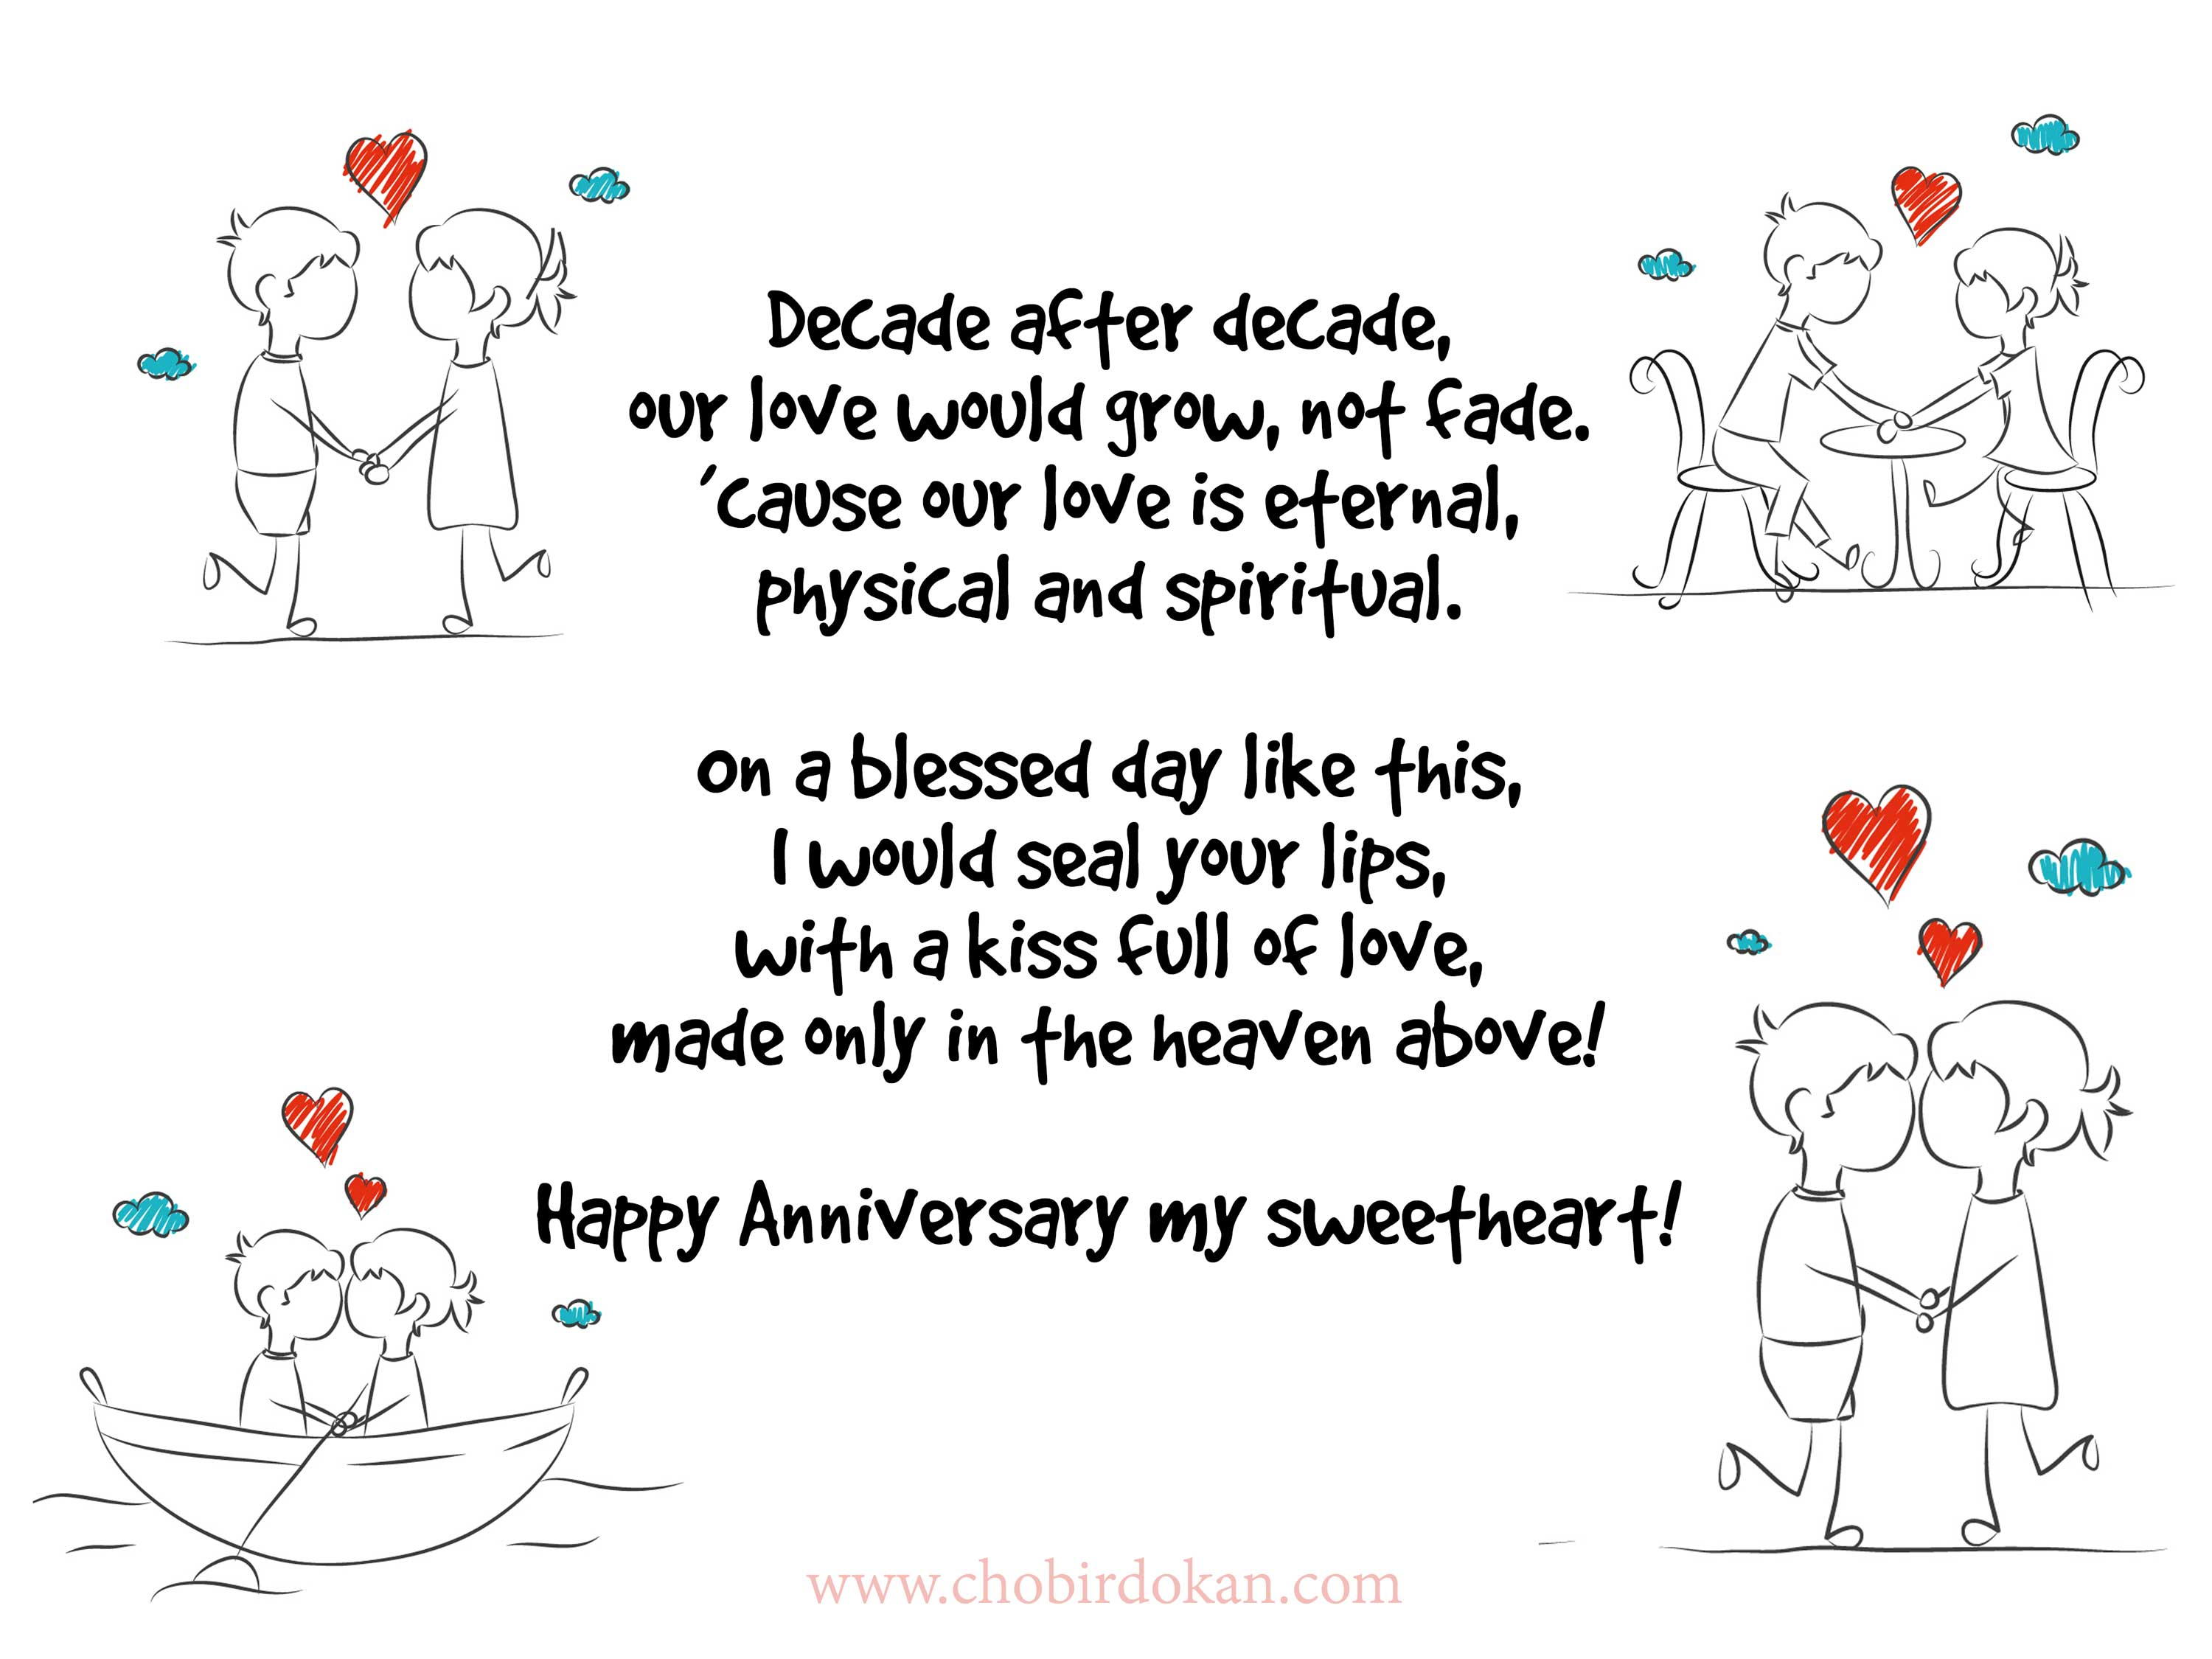 Love Quotes For My Wife Romantic Anniversary Poems For Her For Wife Or Girlfriendpoems